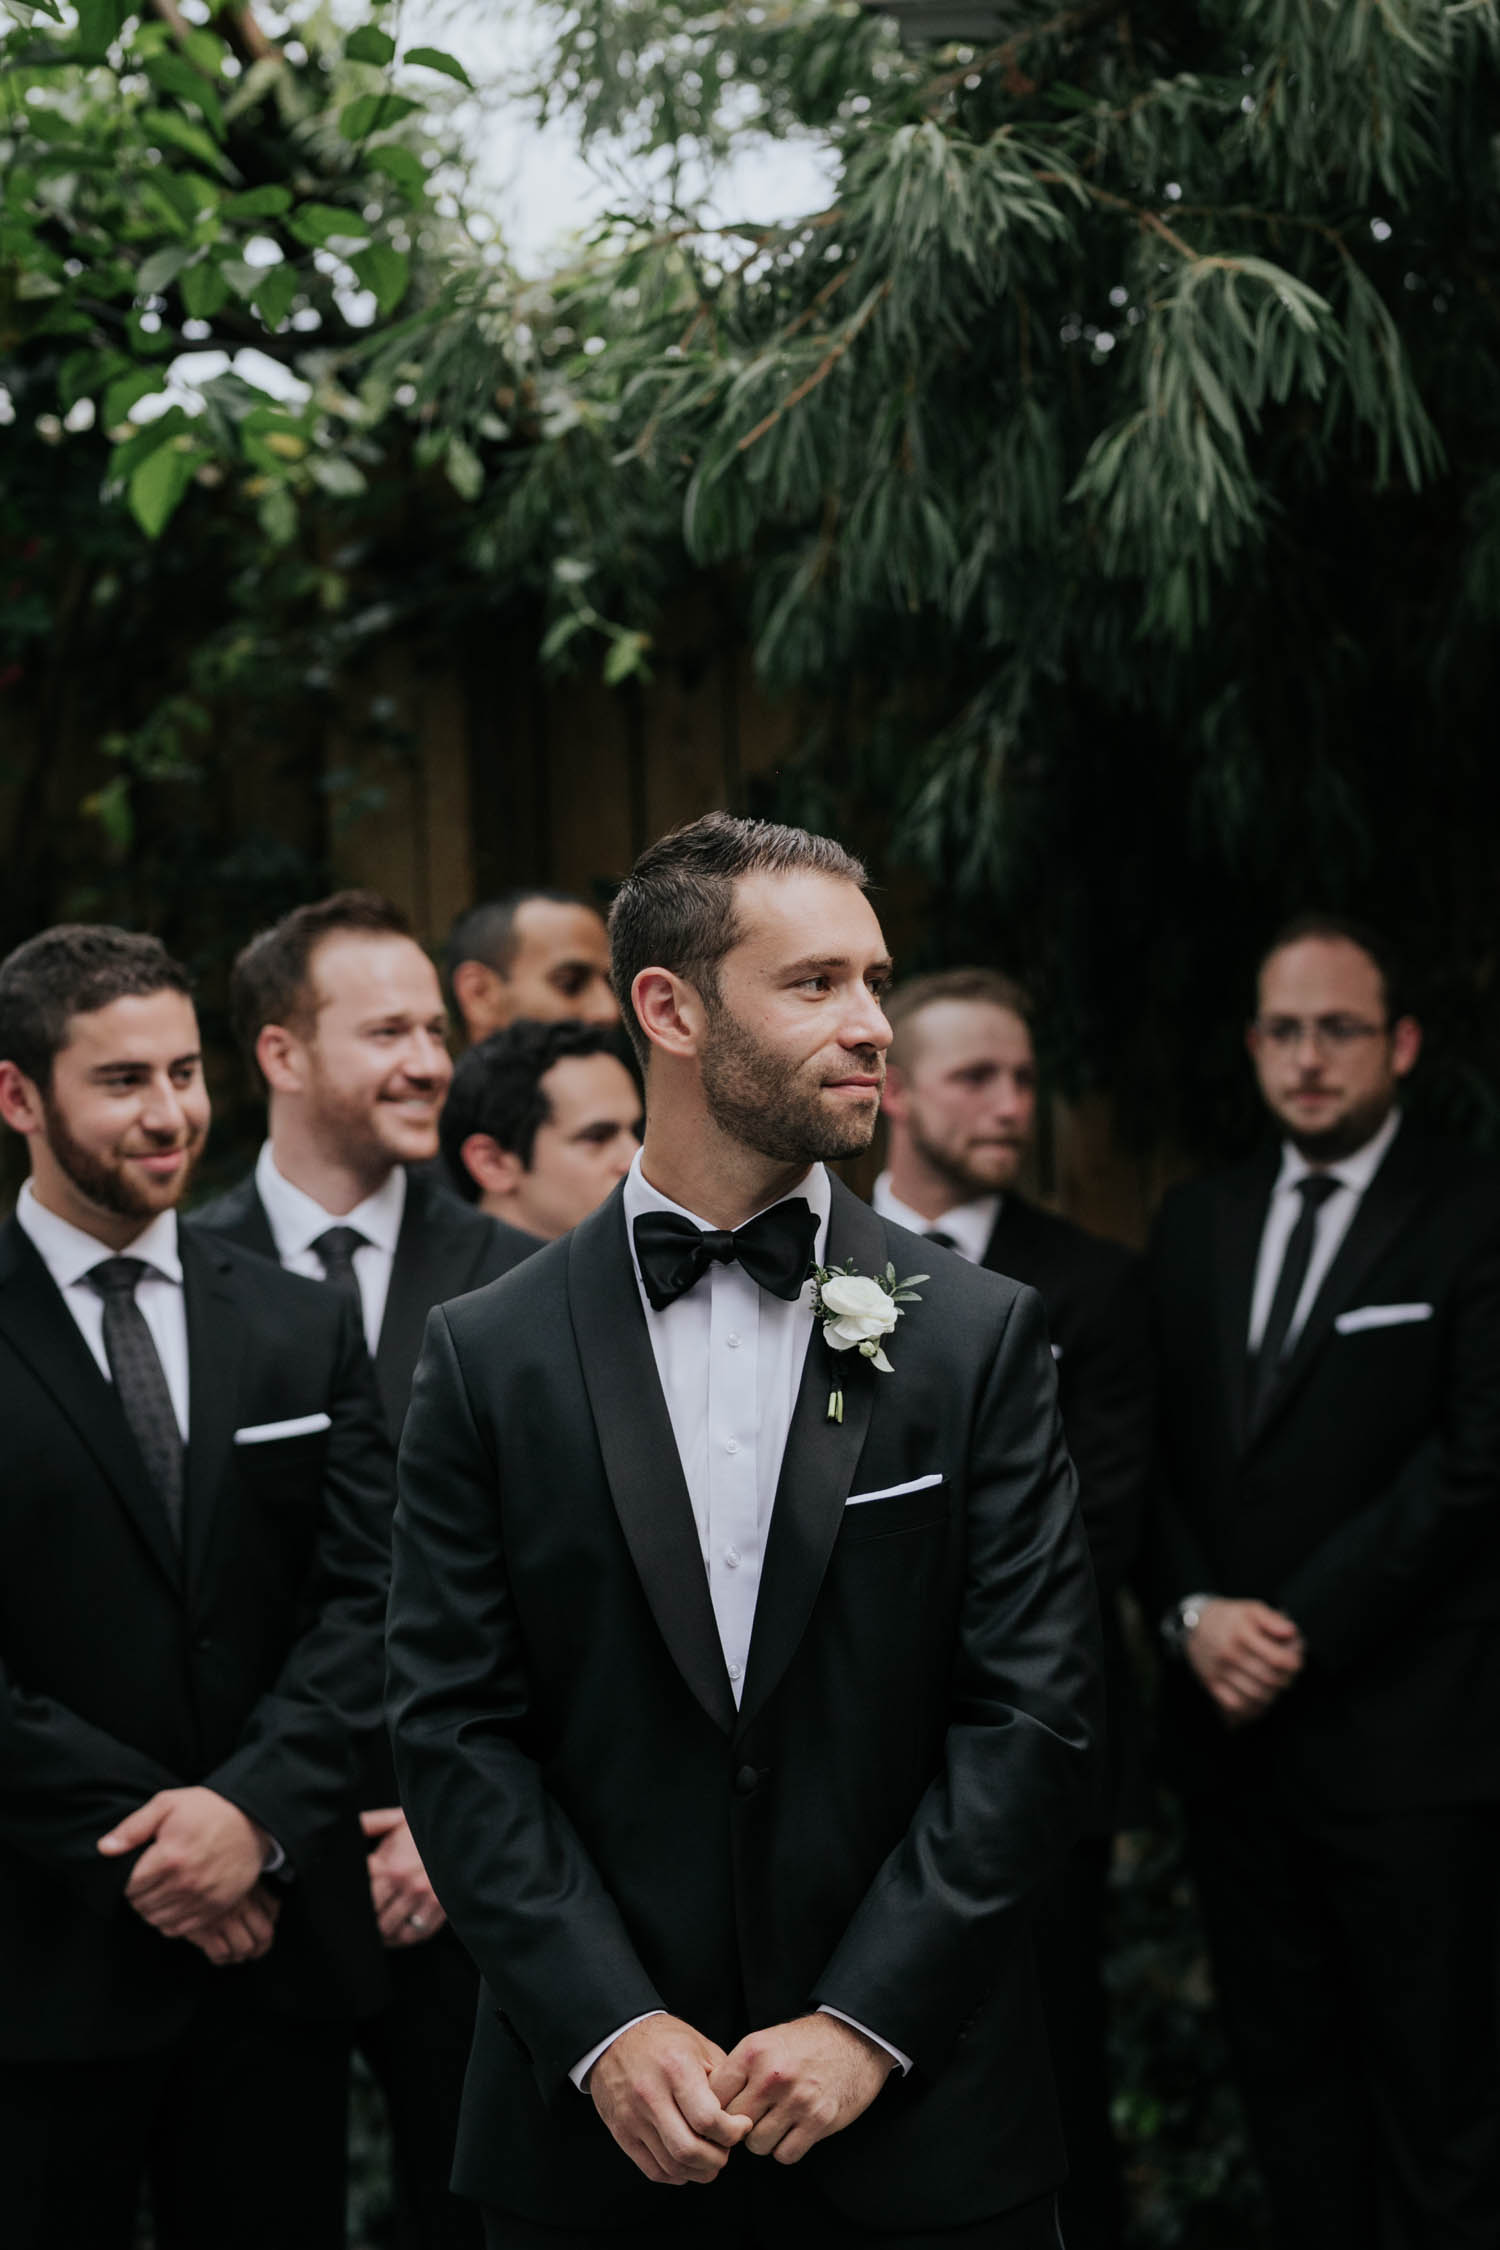 Groom watching his beautiful bride walk down aisle in Greenhouse chapel at Madsen's Greenhouse wedding venue in Newmarket close to Toronto